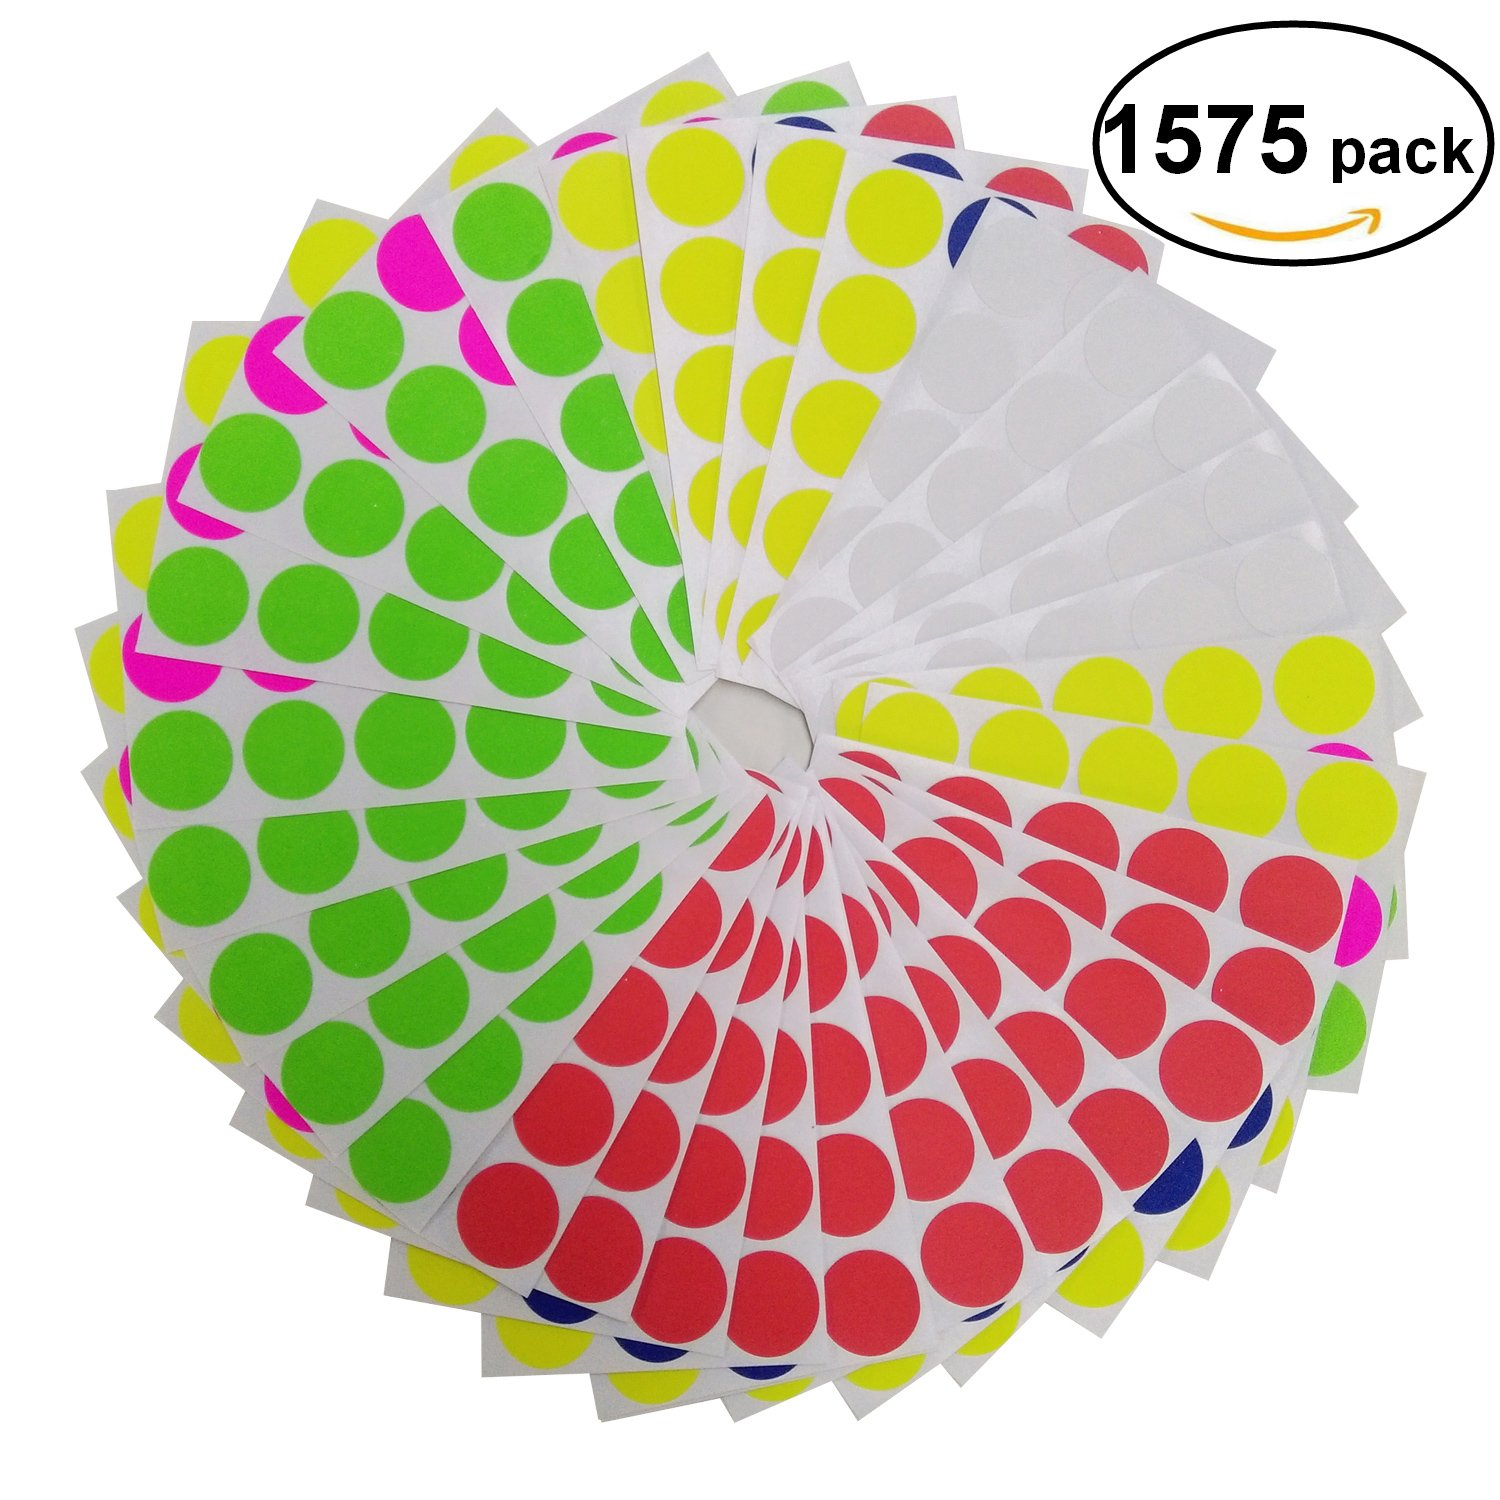 Brothersbox Round Write Color Coding Labels Neon Colors Dia 0.75 Inches Pack of 1575 Garage Sales Stickers